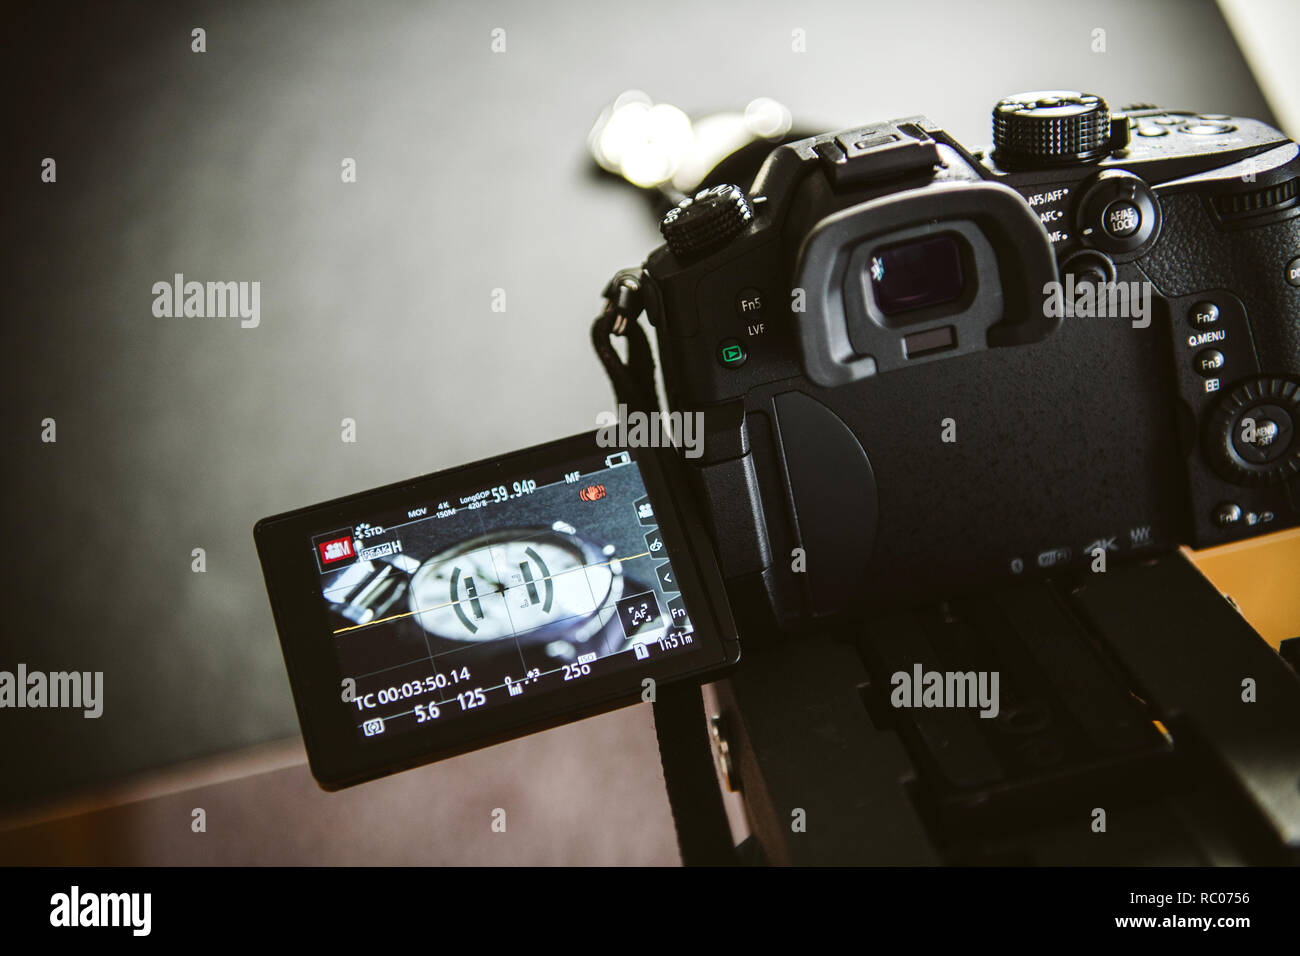 PARIS, FRANCE - APR 28, 2017: Vlogger making footage episode advertising with luxury swiss watch on photo table with Panasonic Lumix GH5 kit with Leica lens  - Stock Image